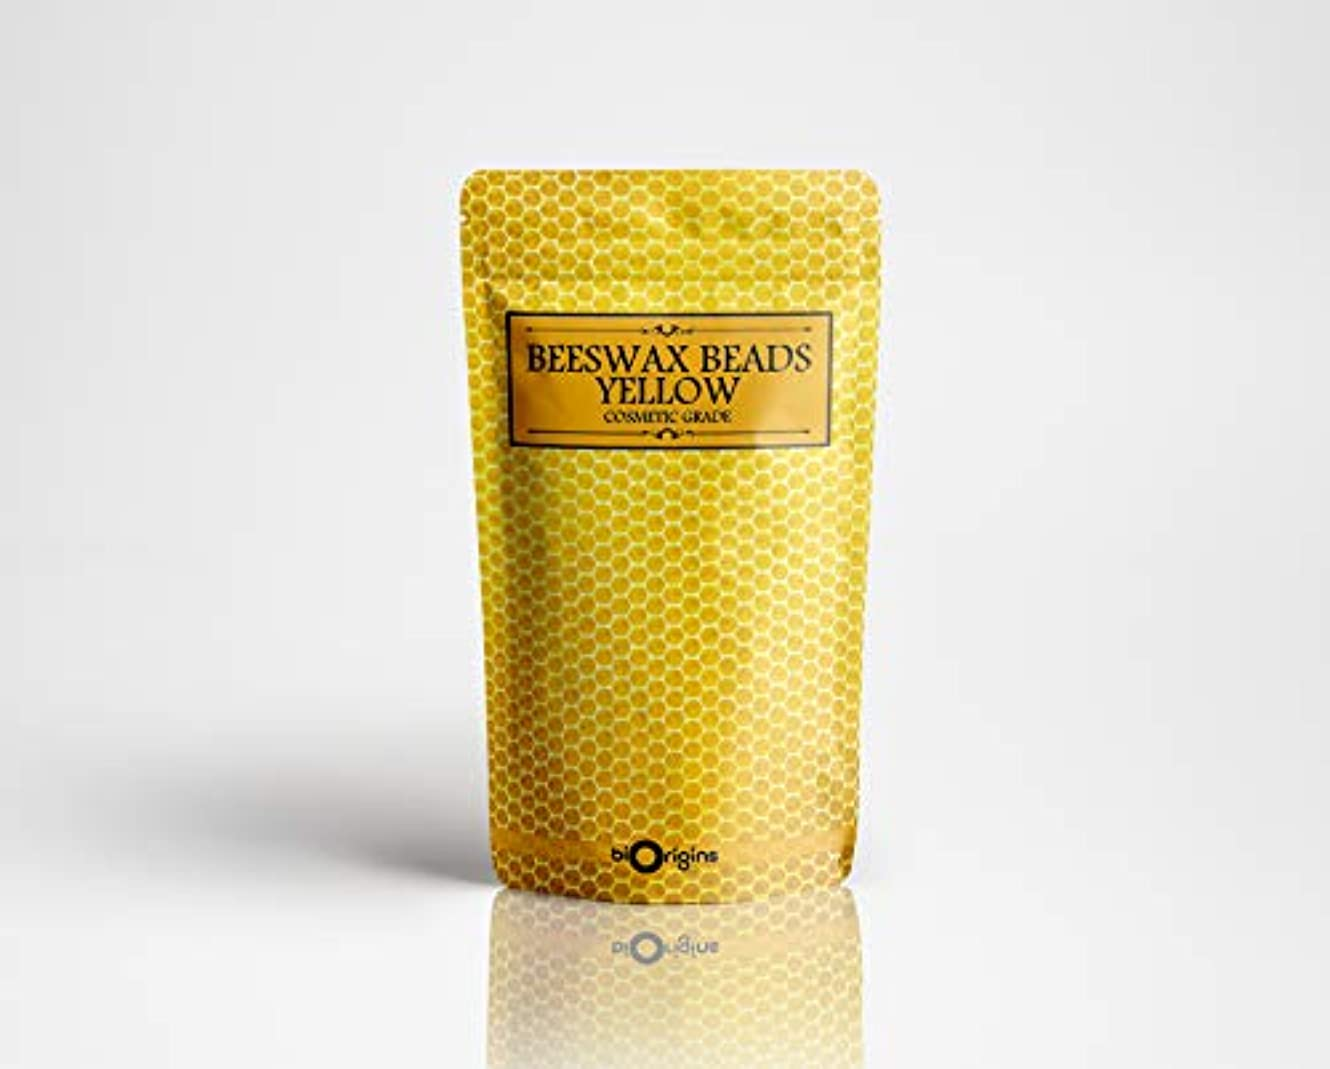 事故思春期の曇ったBeeswax Beads Yellow - Cosmetic Grade - 100g